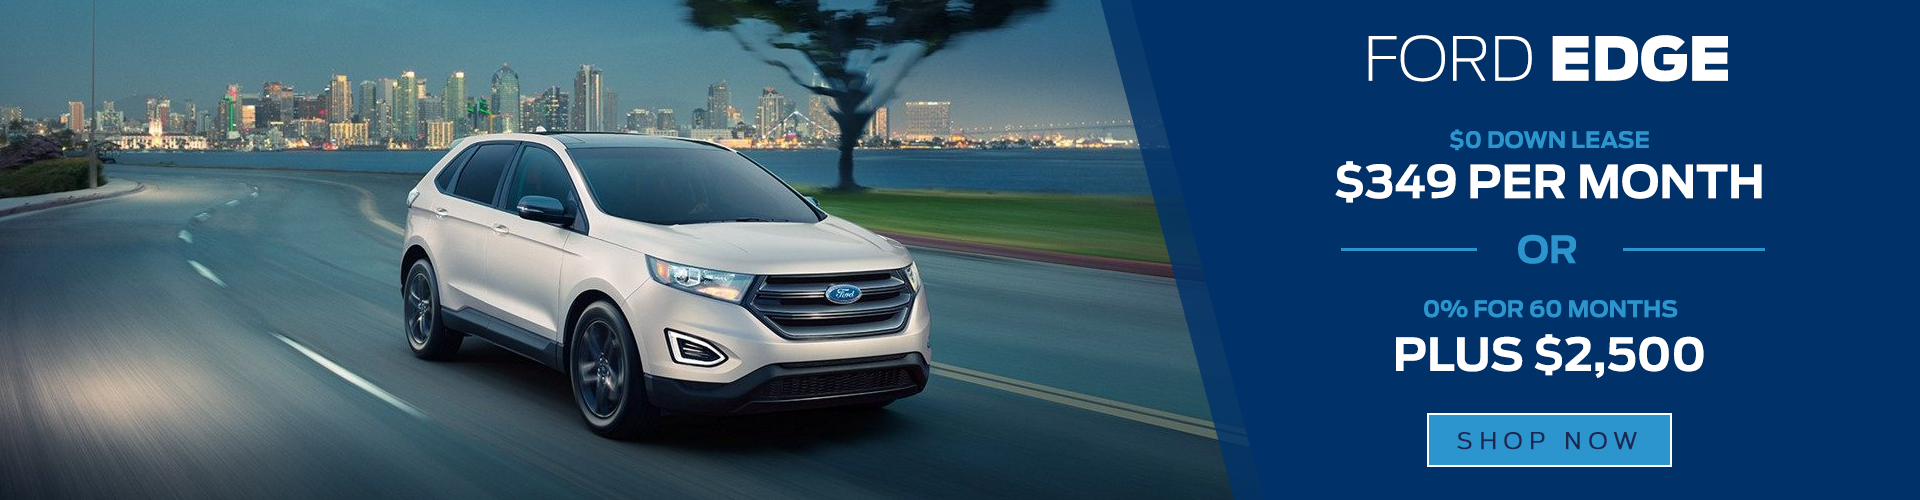 silver 2018 ford edge lease special